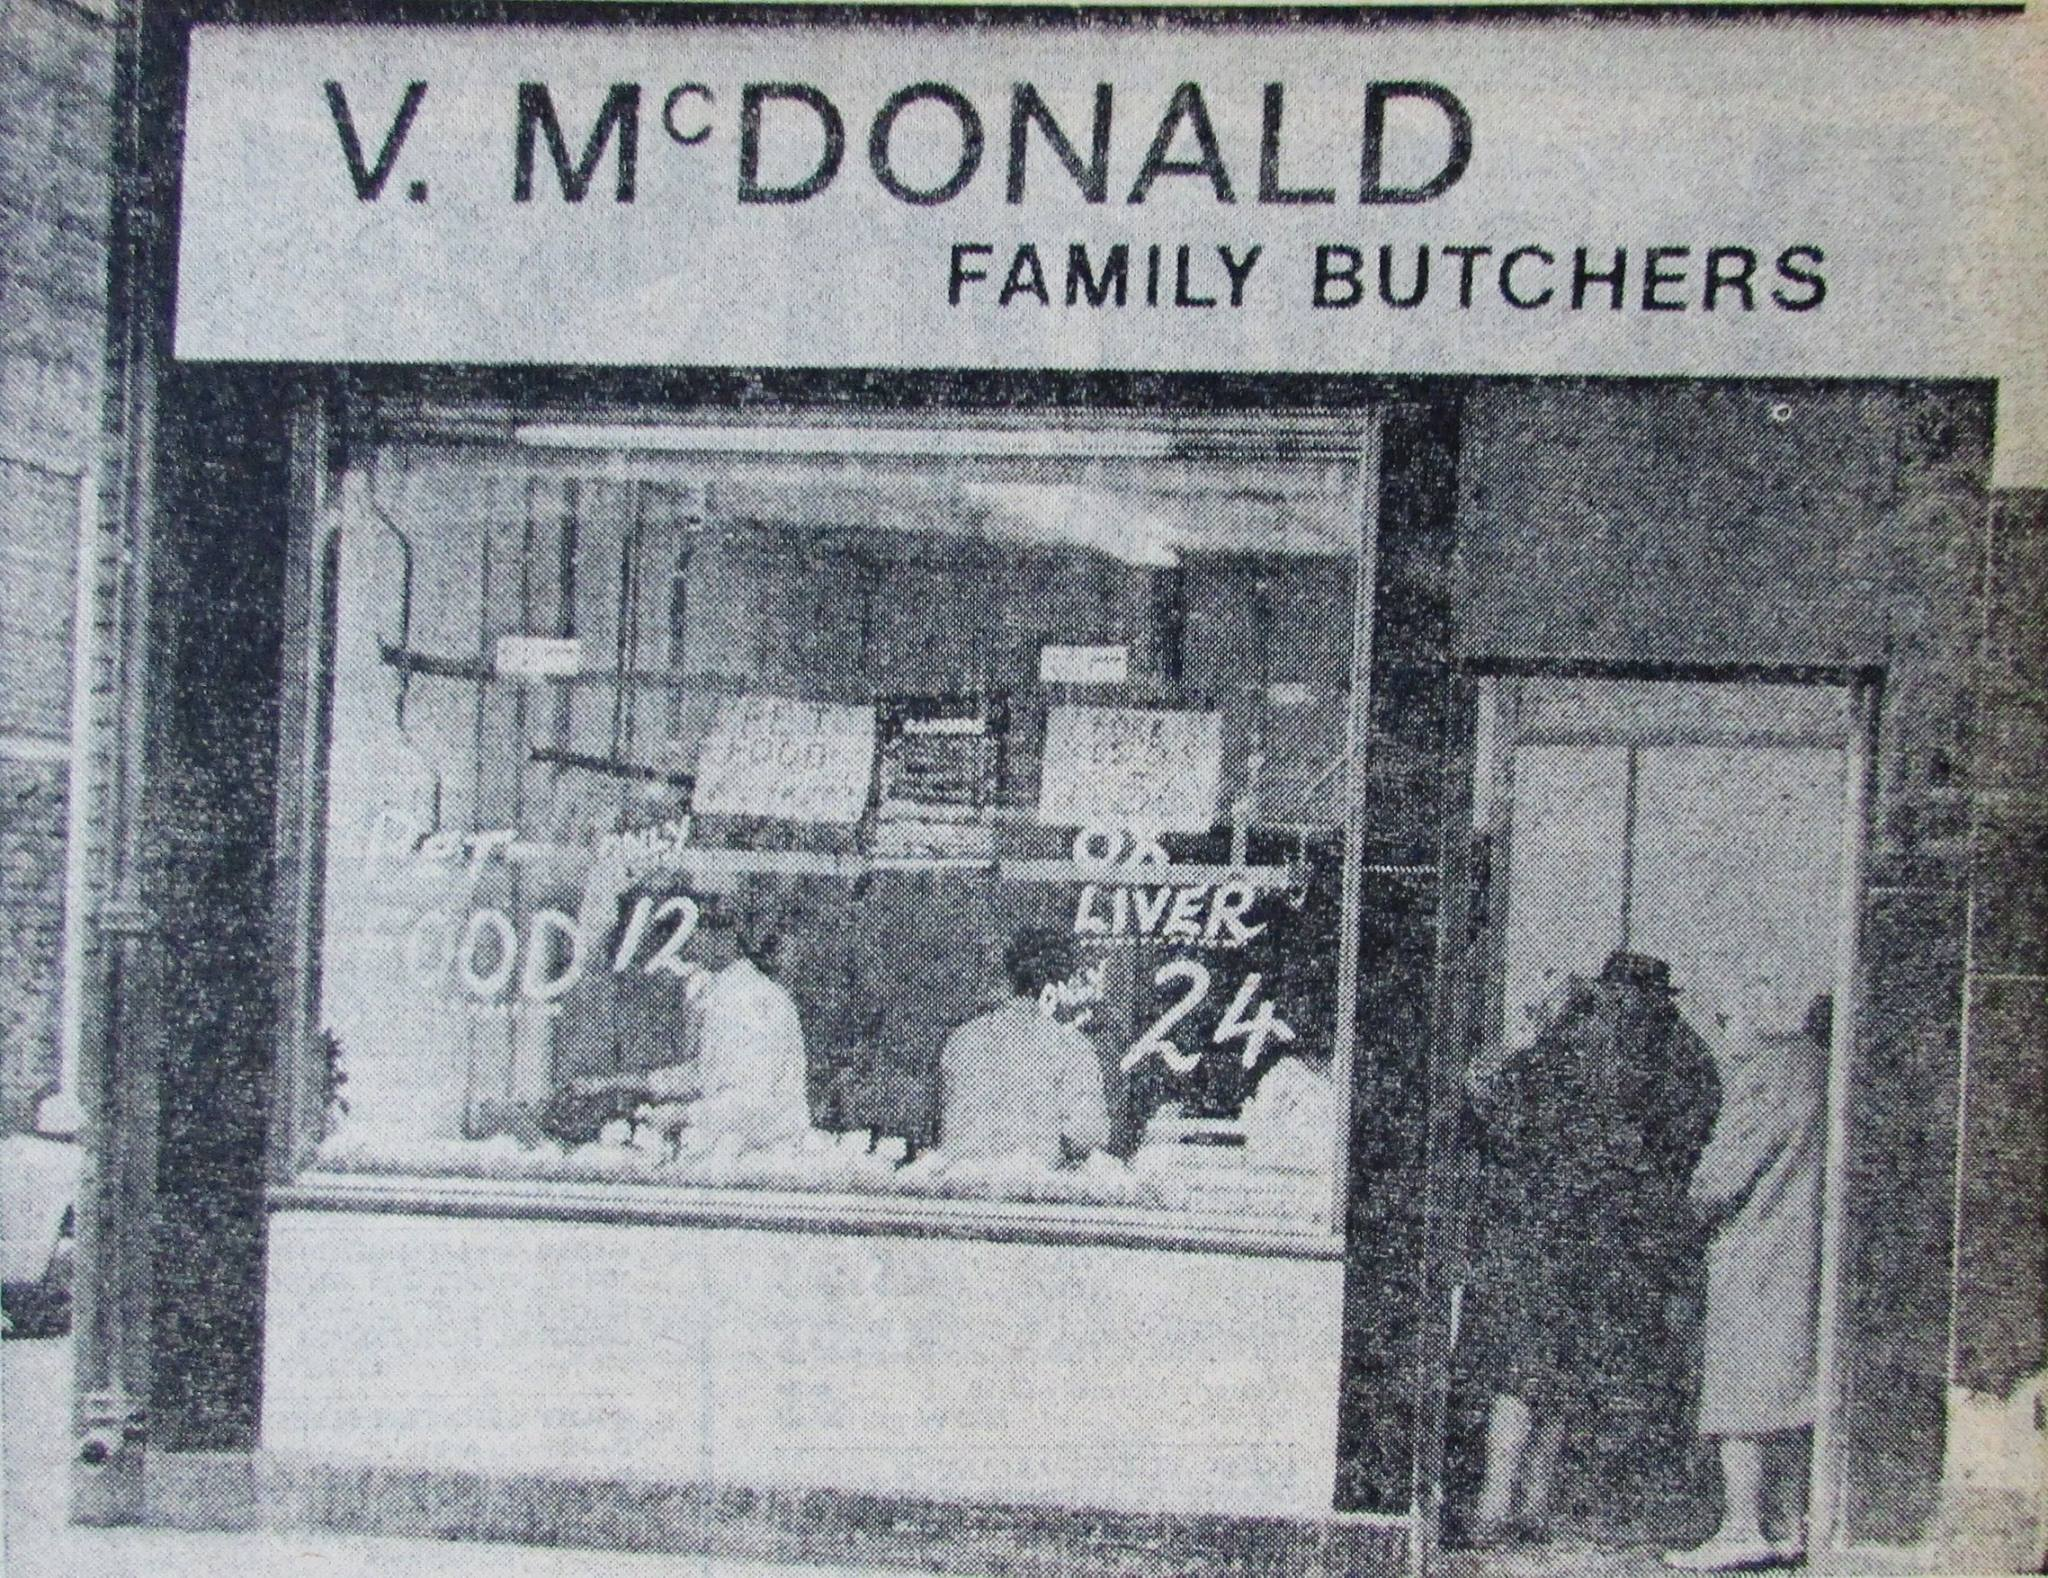 Butchers Shop  - New Butchers shop Opened in Wallsend (Photograph from 1976)